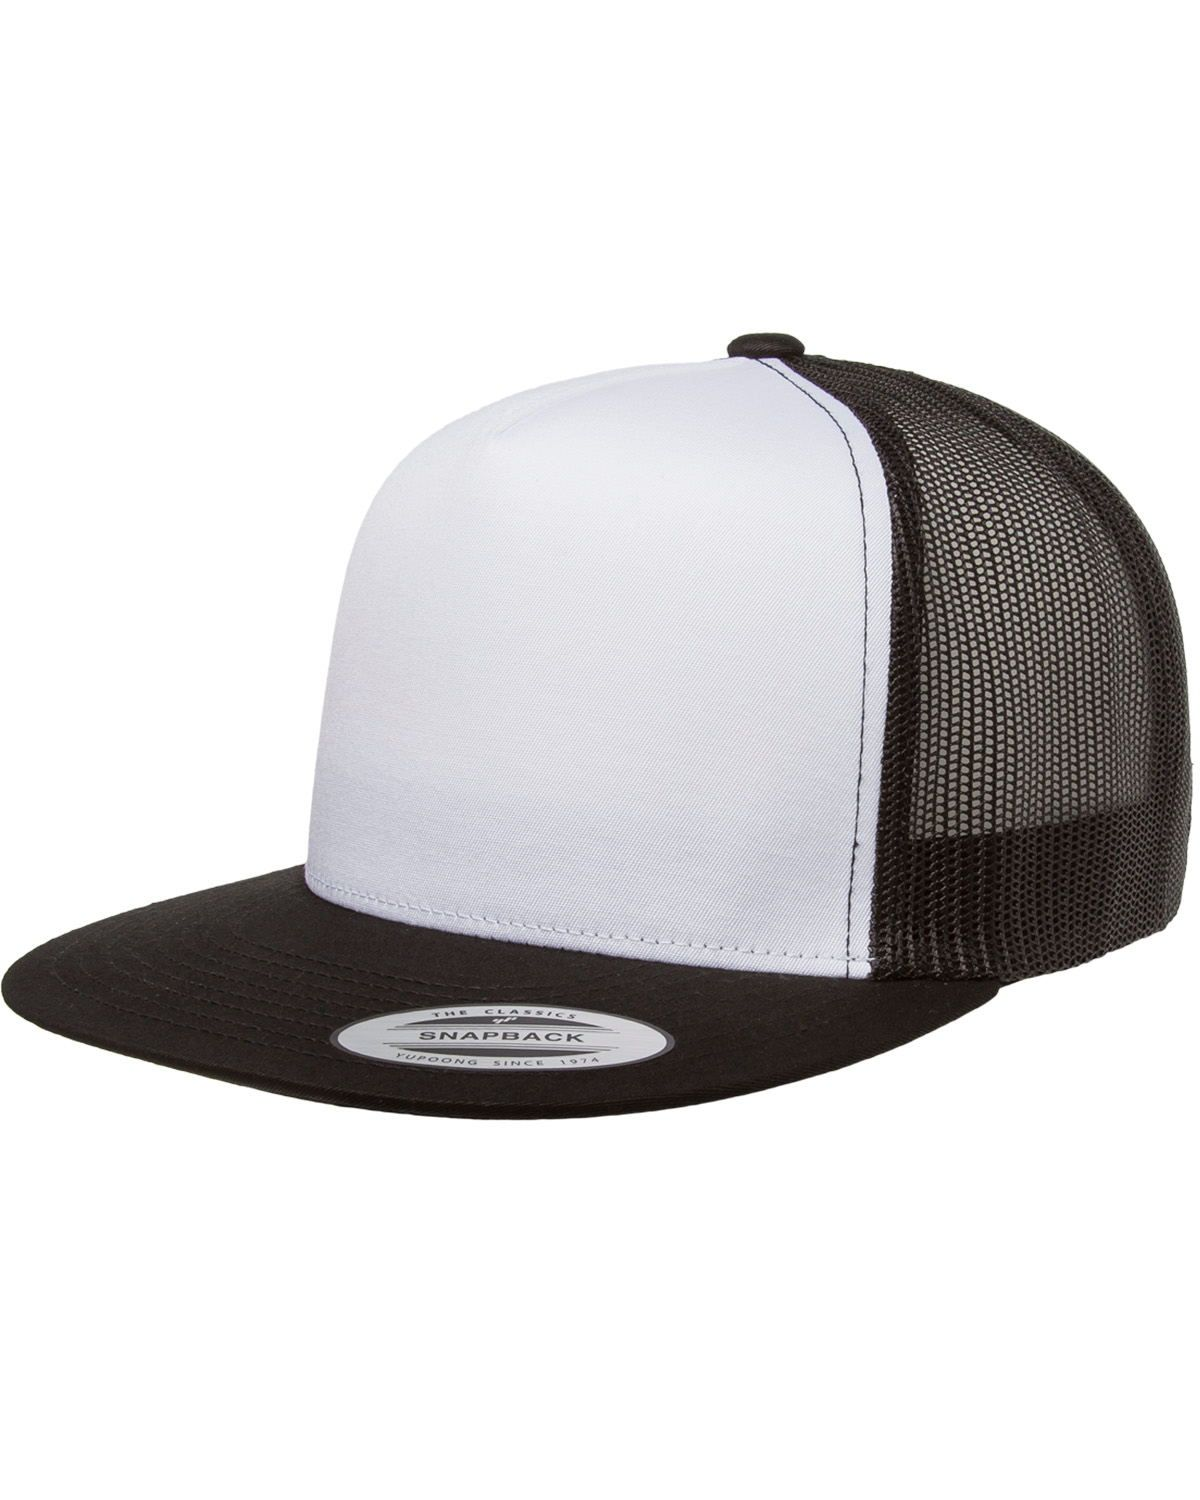 Yupoong Adult Classic Trucker with White Front Panel Cap-6006W